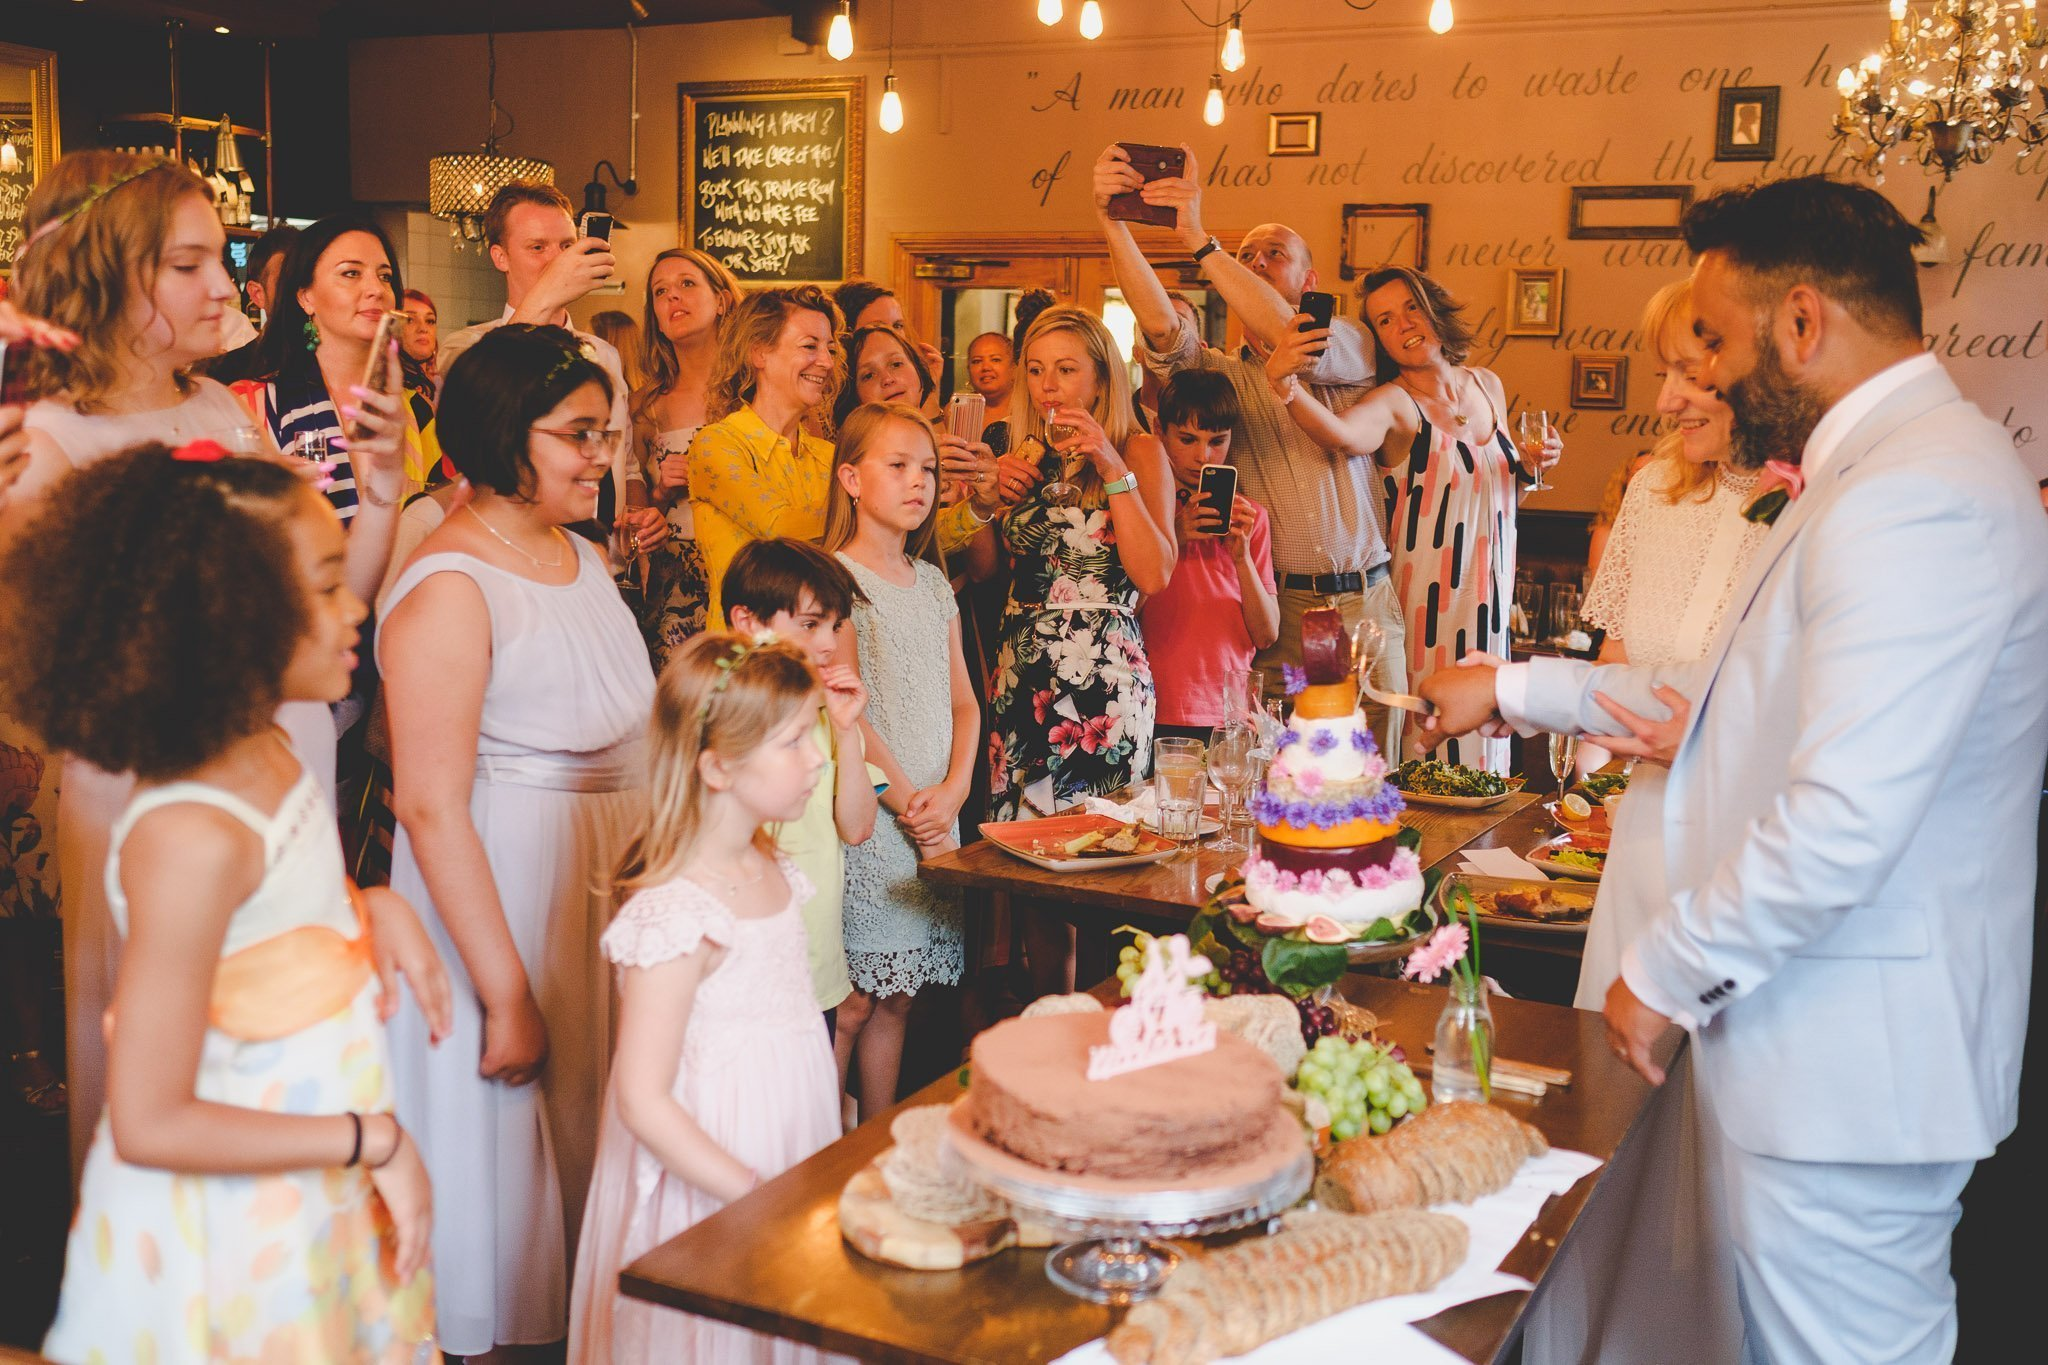 Cake cutting at wedding reception in The Marquis Cornwallis Pub in Bloomsbury London